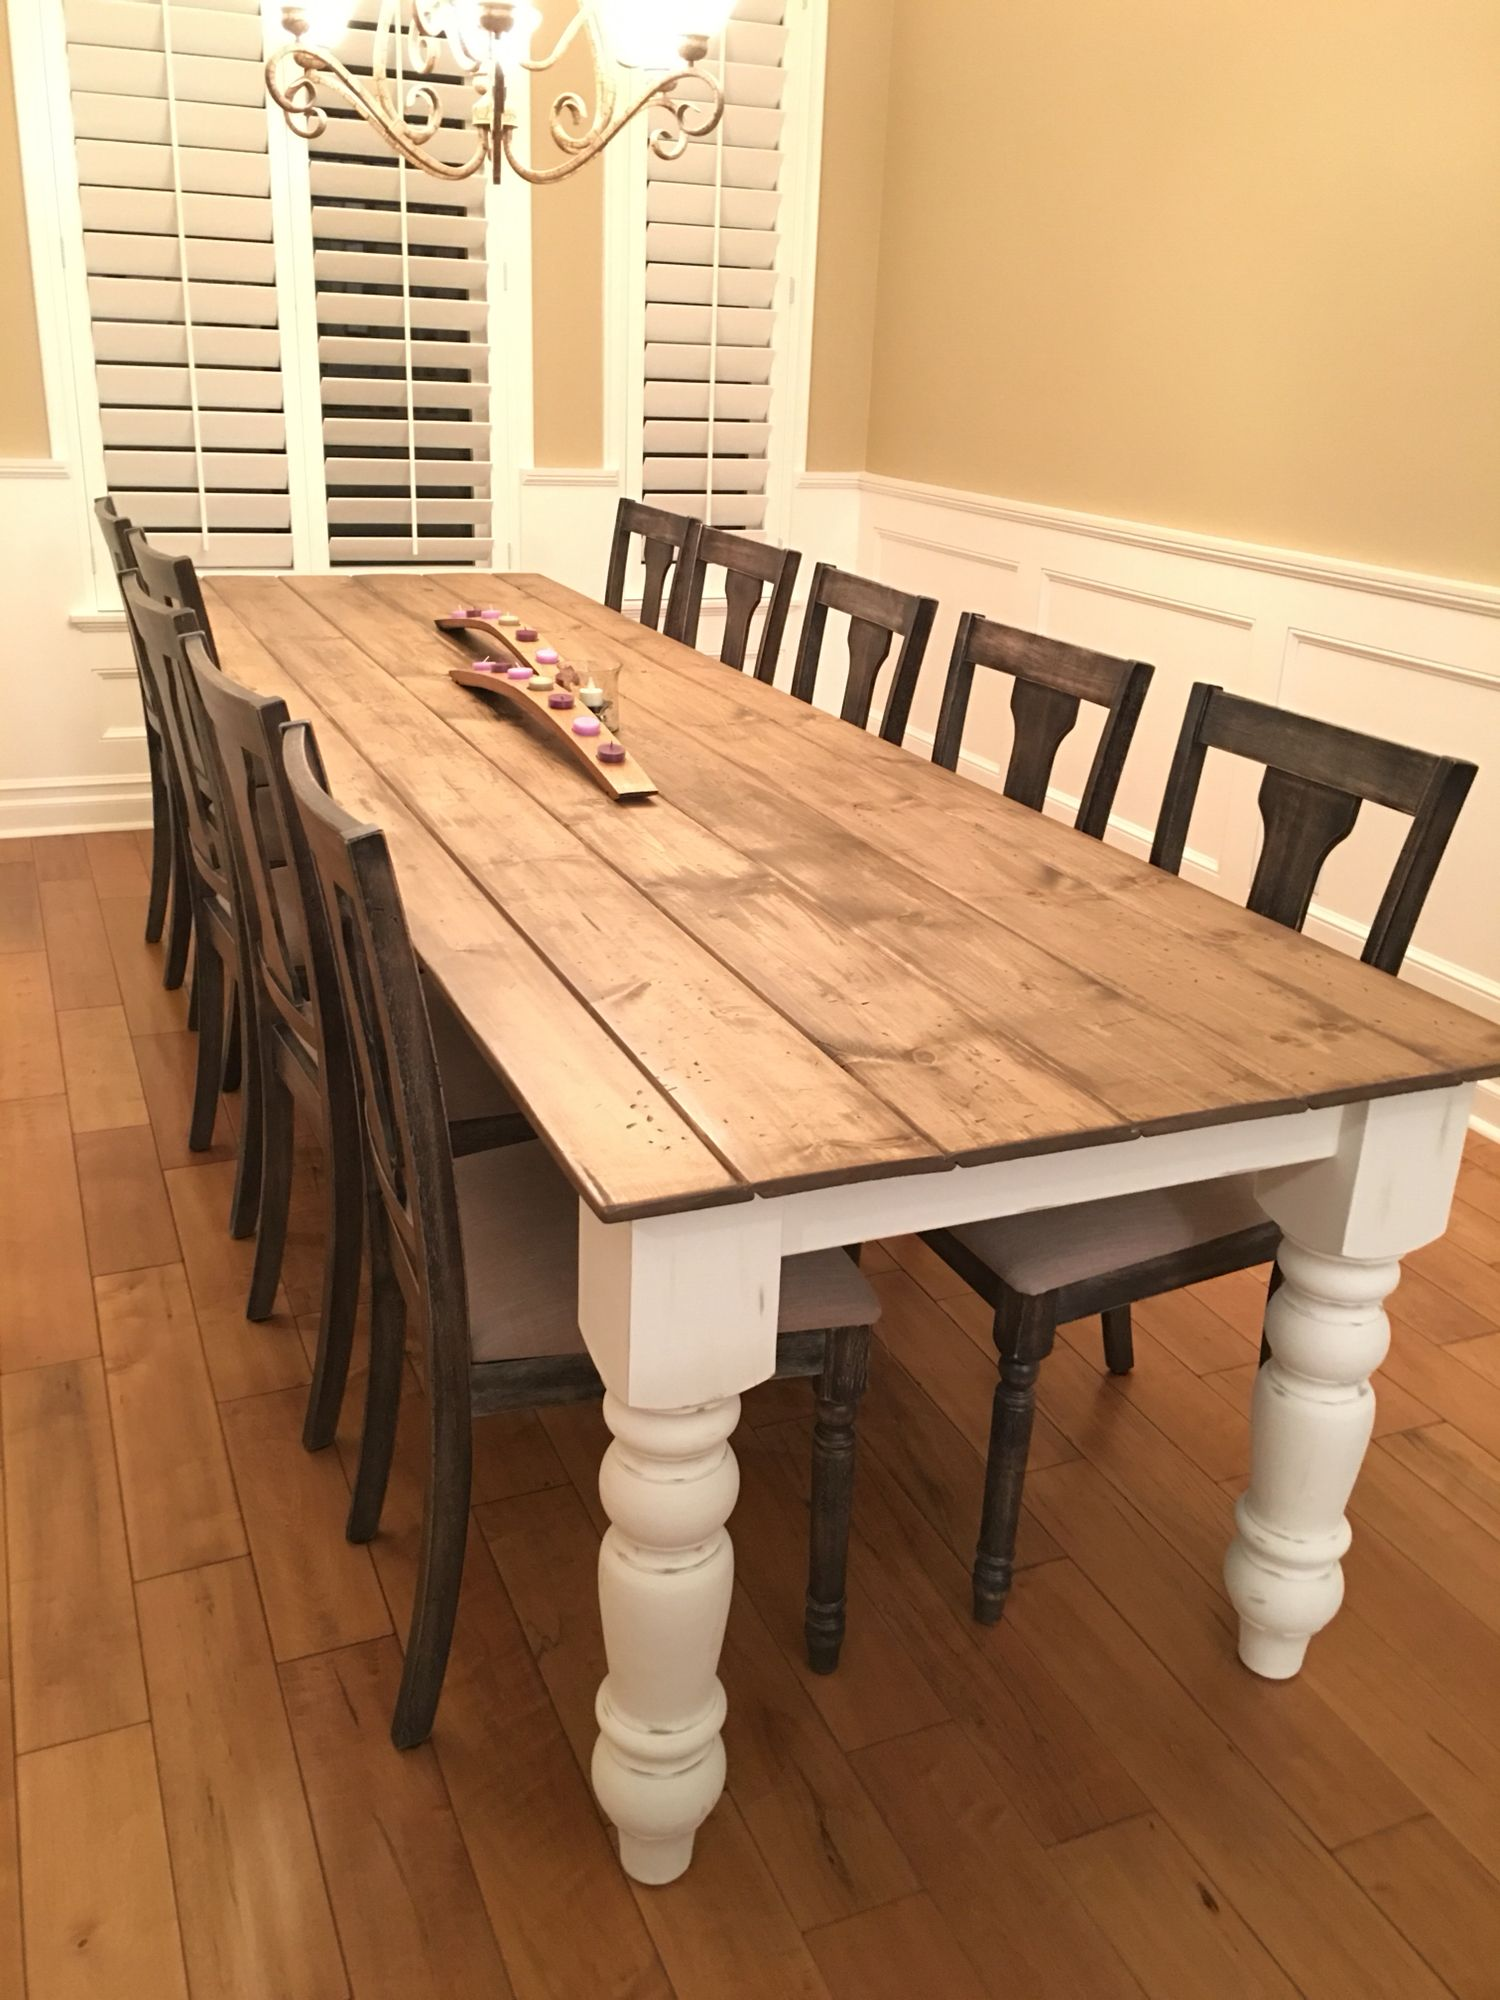 Diy farmhouse table my husband made my 10 foot 8 inch for Building a farmhouse